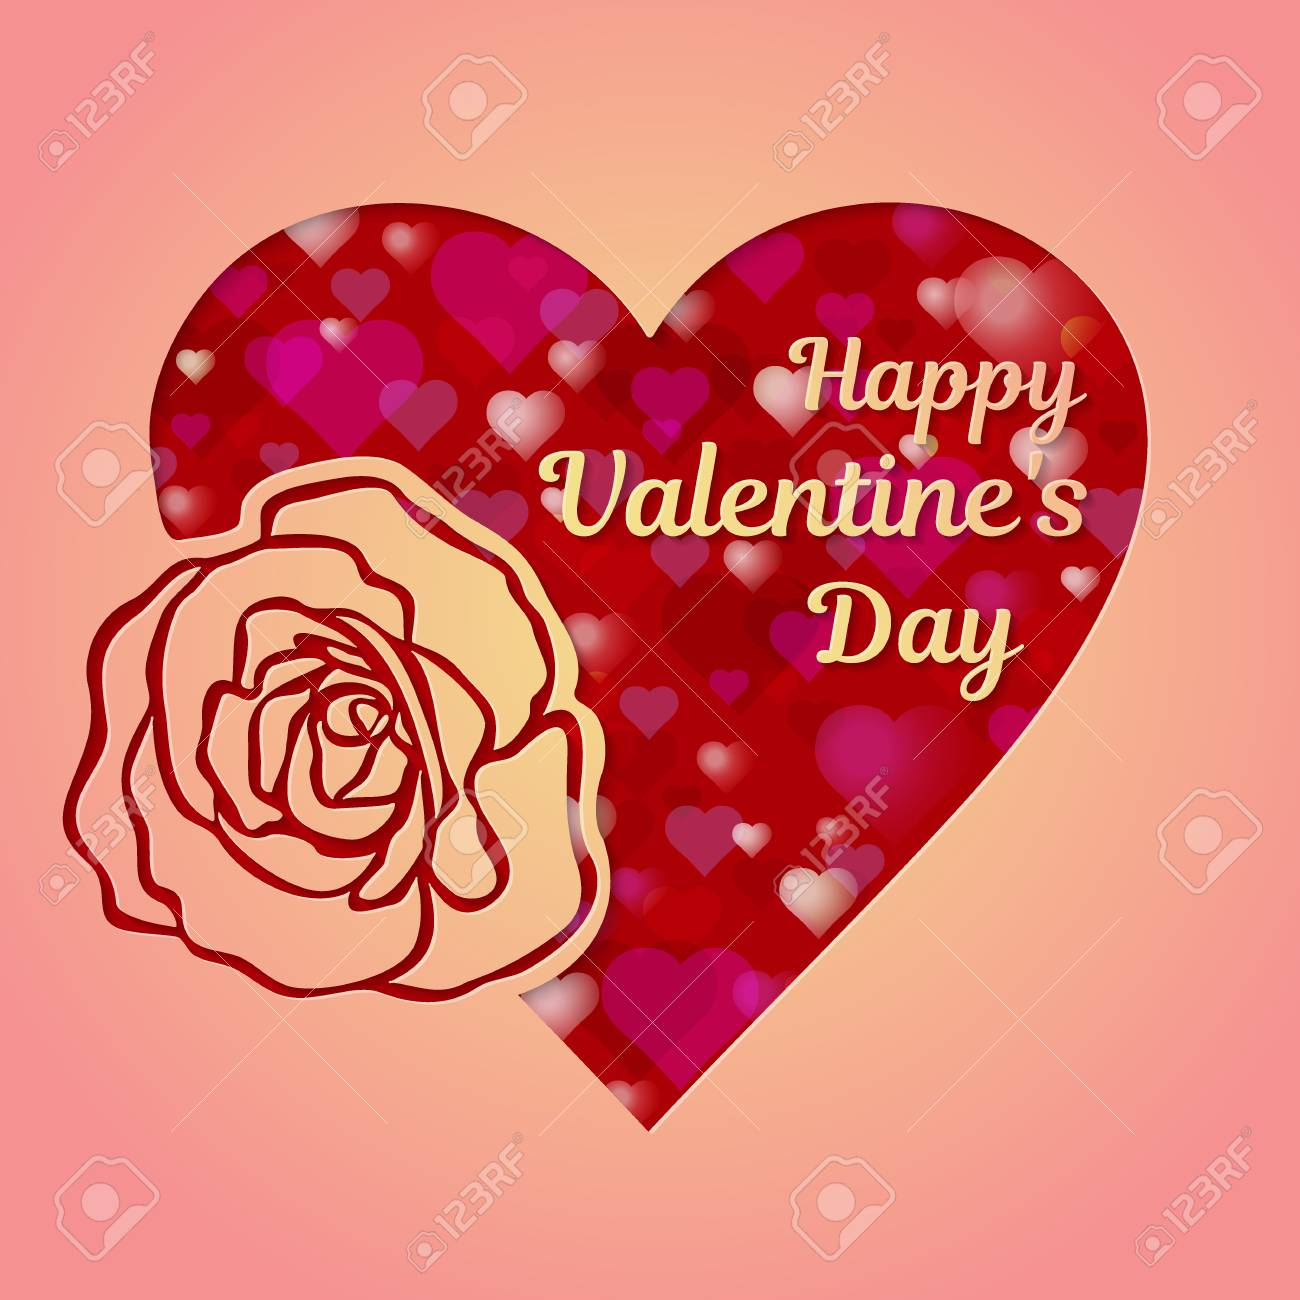 Happy Valentines Day Greeting Card Or Banner A Pink Heart And